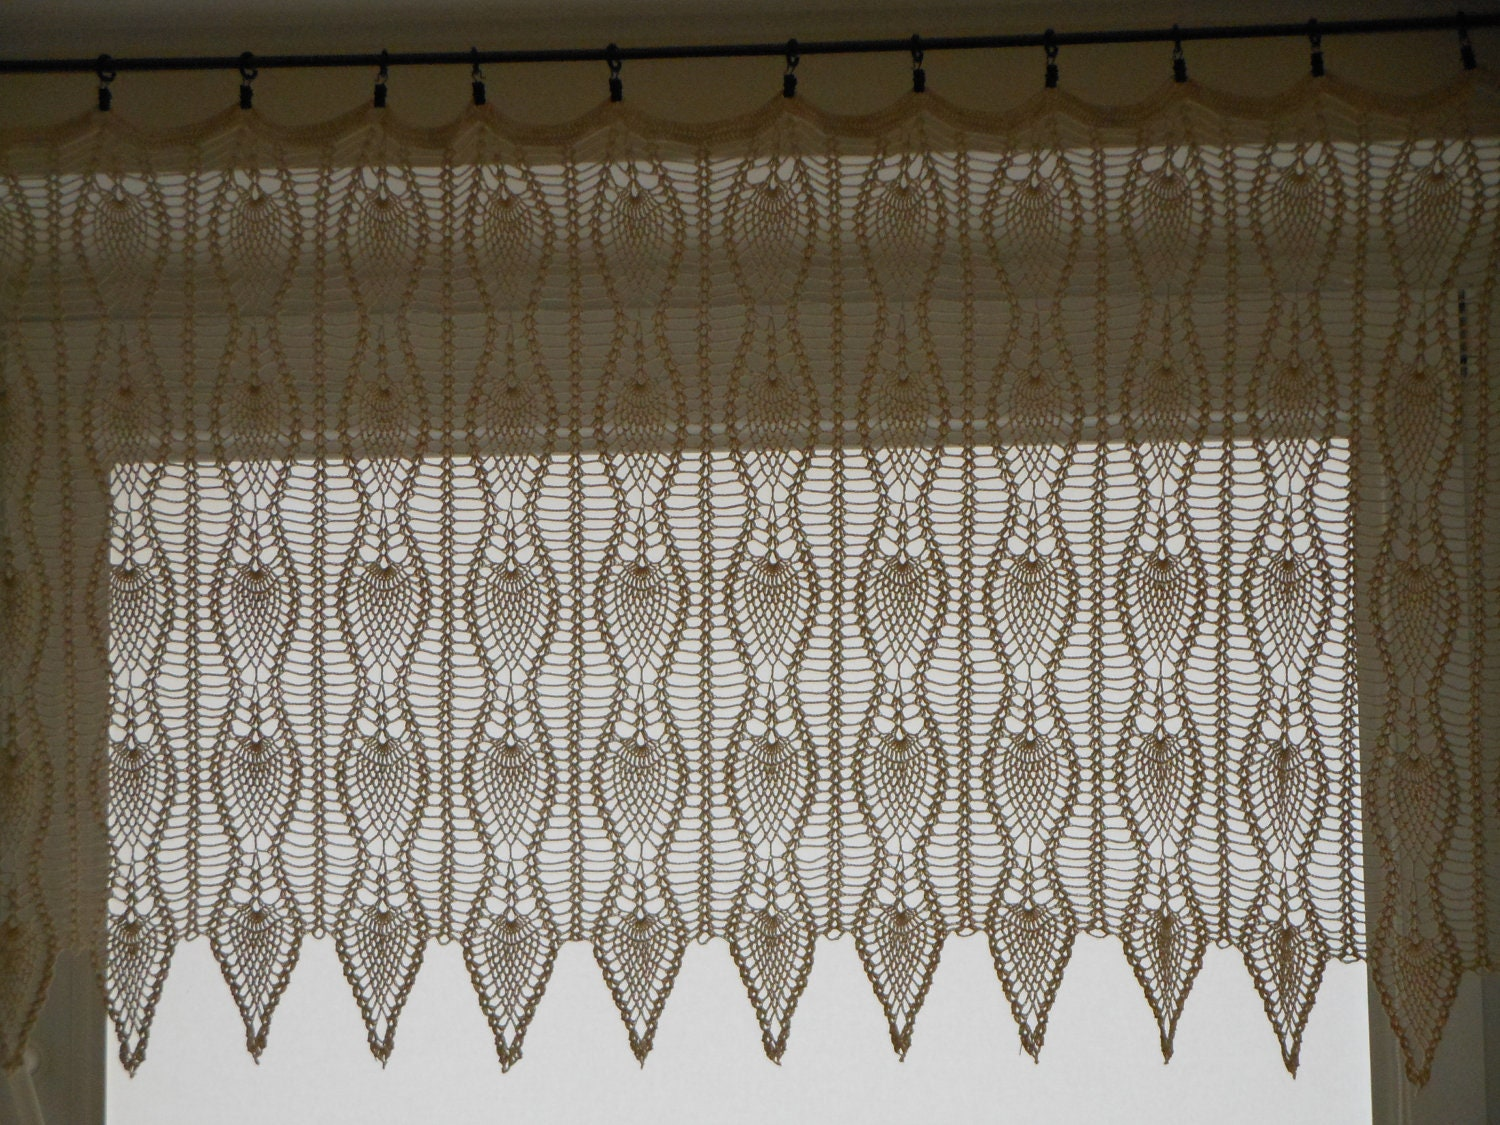 Crochet Curtain Lace Window Valance